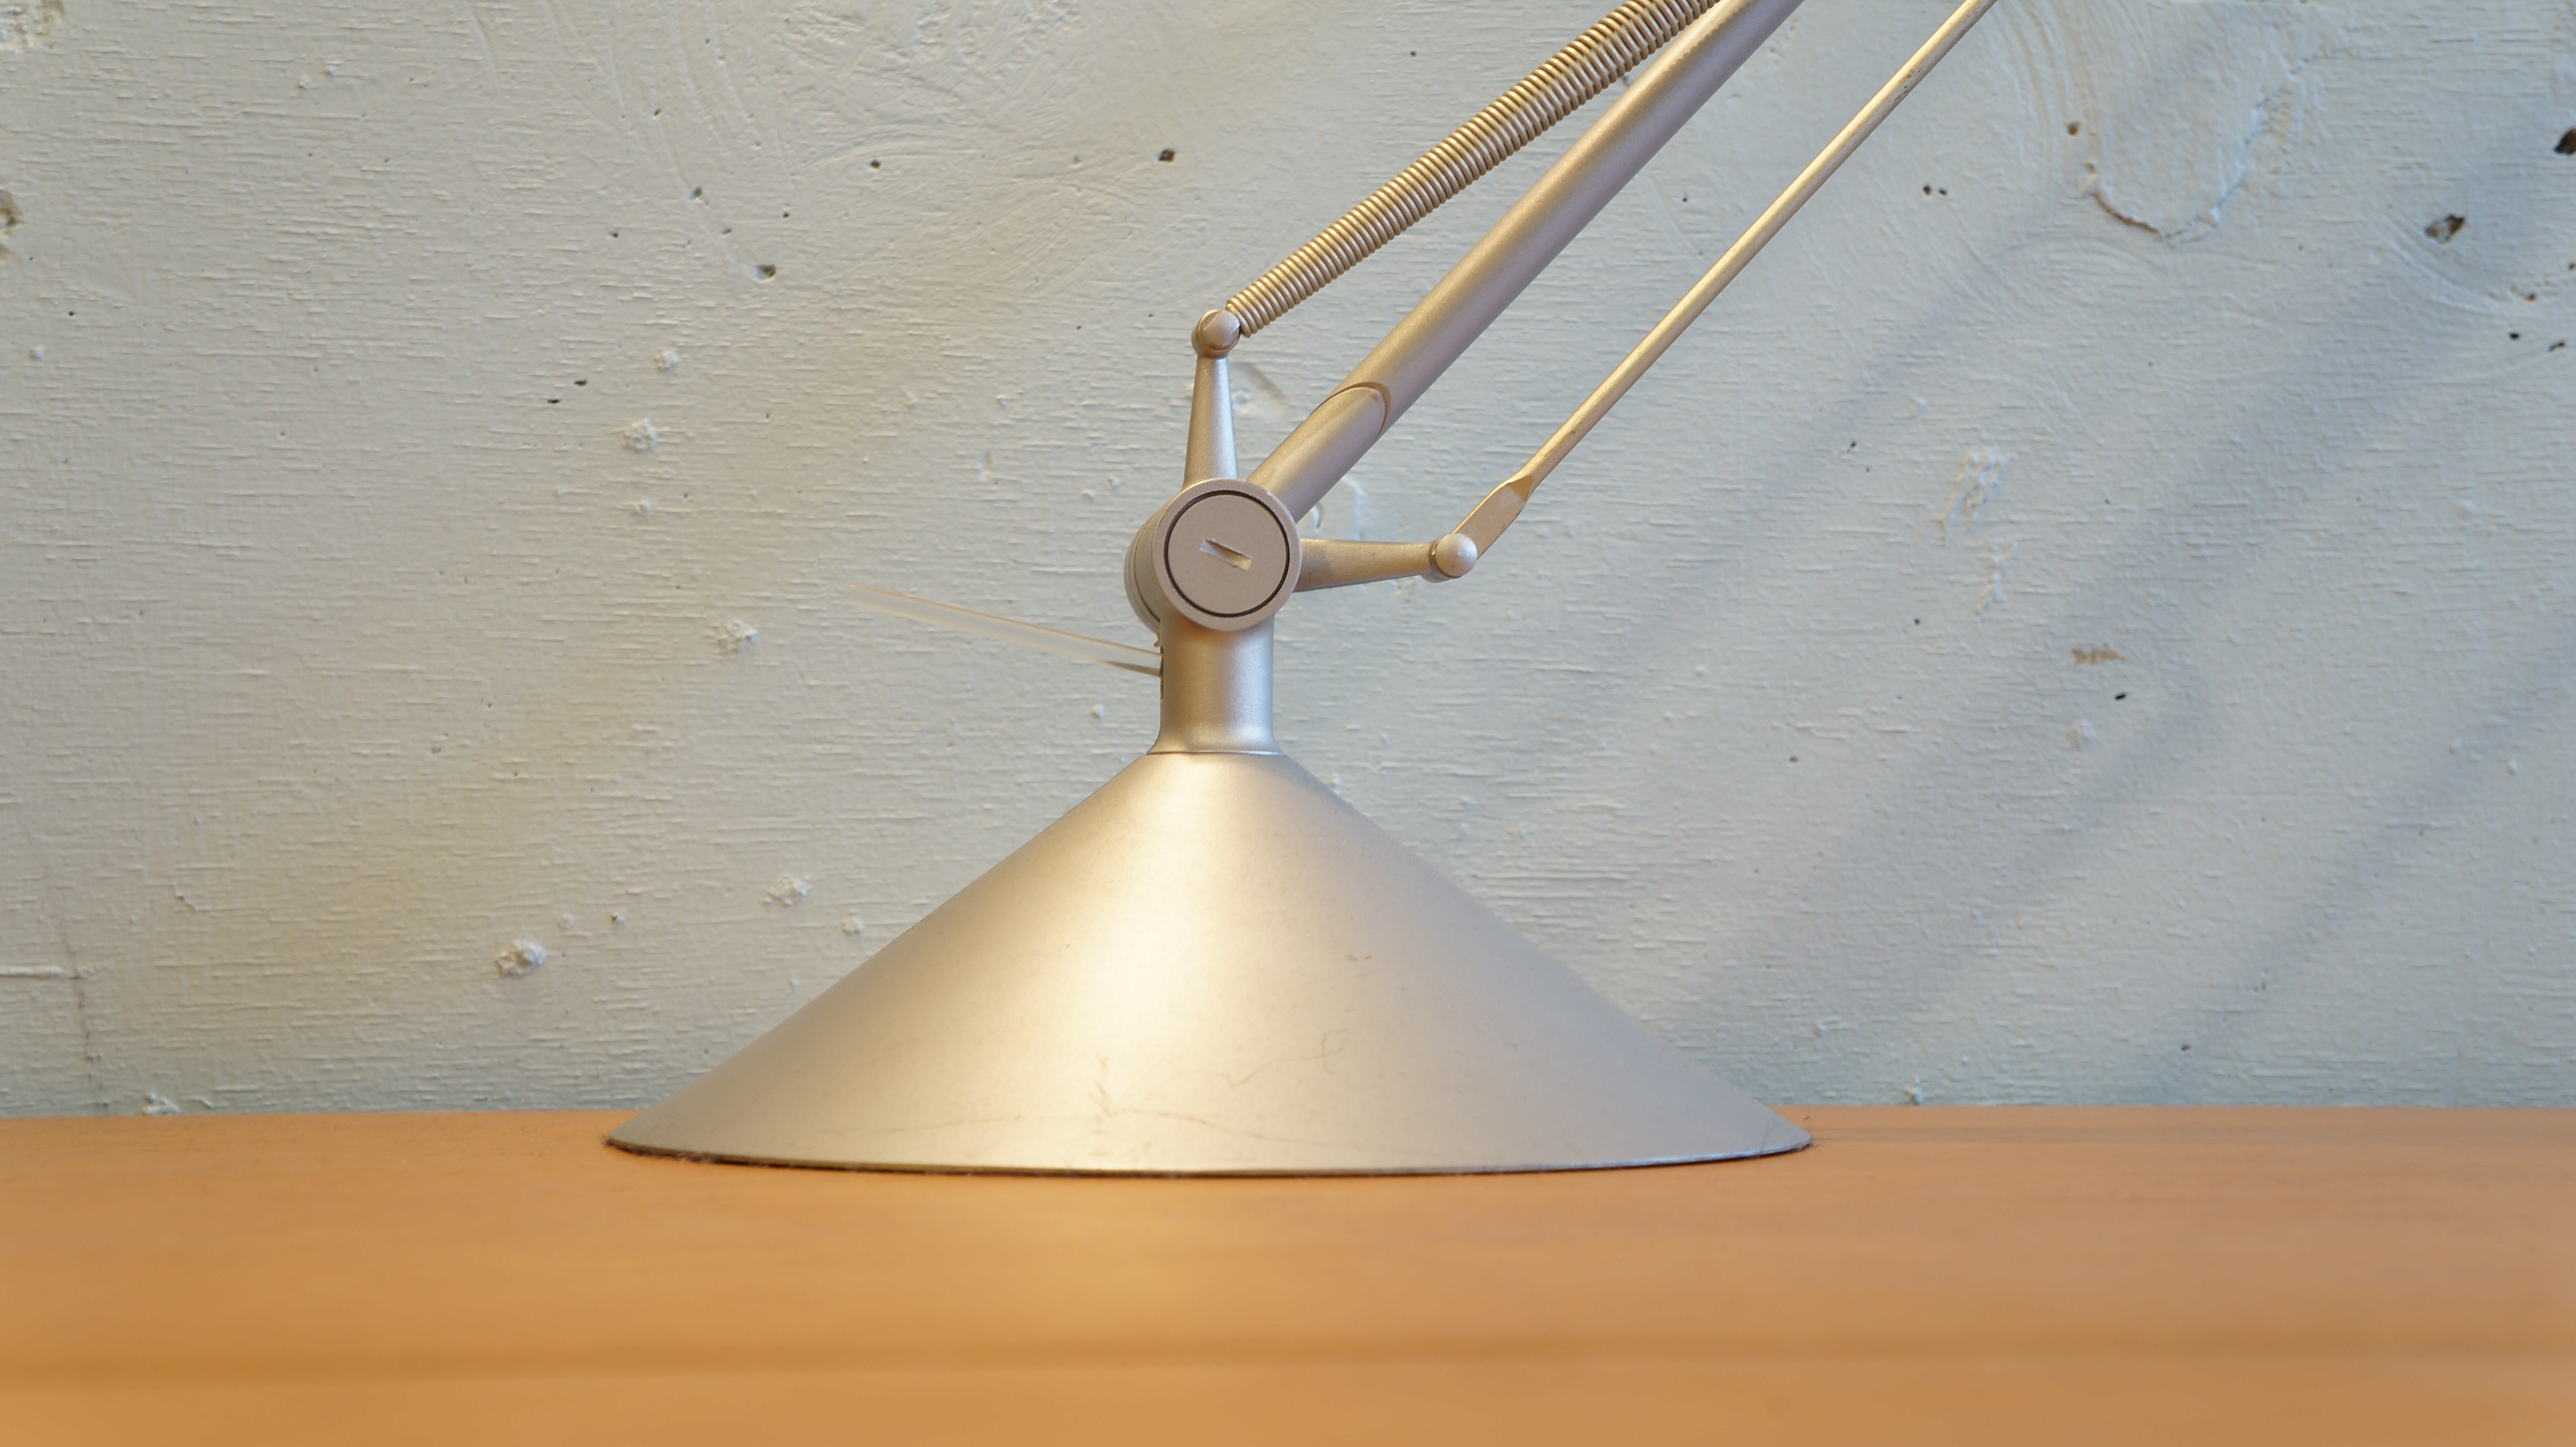 """FLOS desk light """"ARCHIMOON TECH"""" designed by Philippe Starck/フロス デスクライト アーキムーン テック フィリップ・スタルク デザイン"""